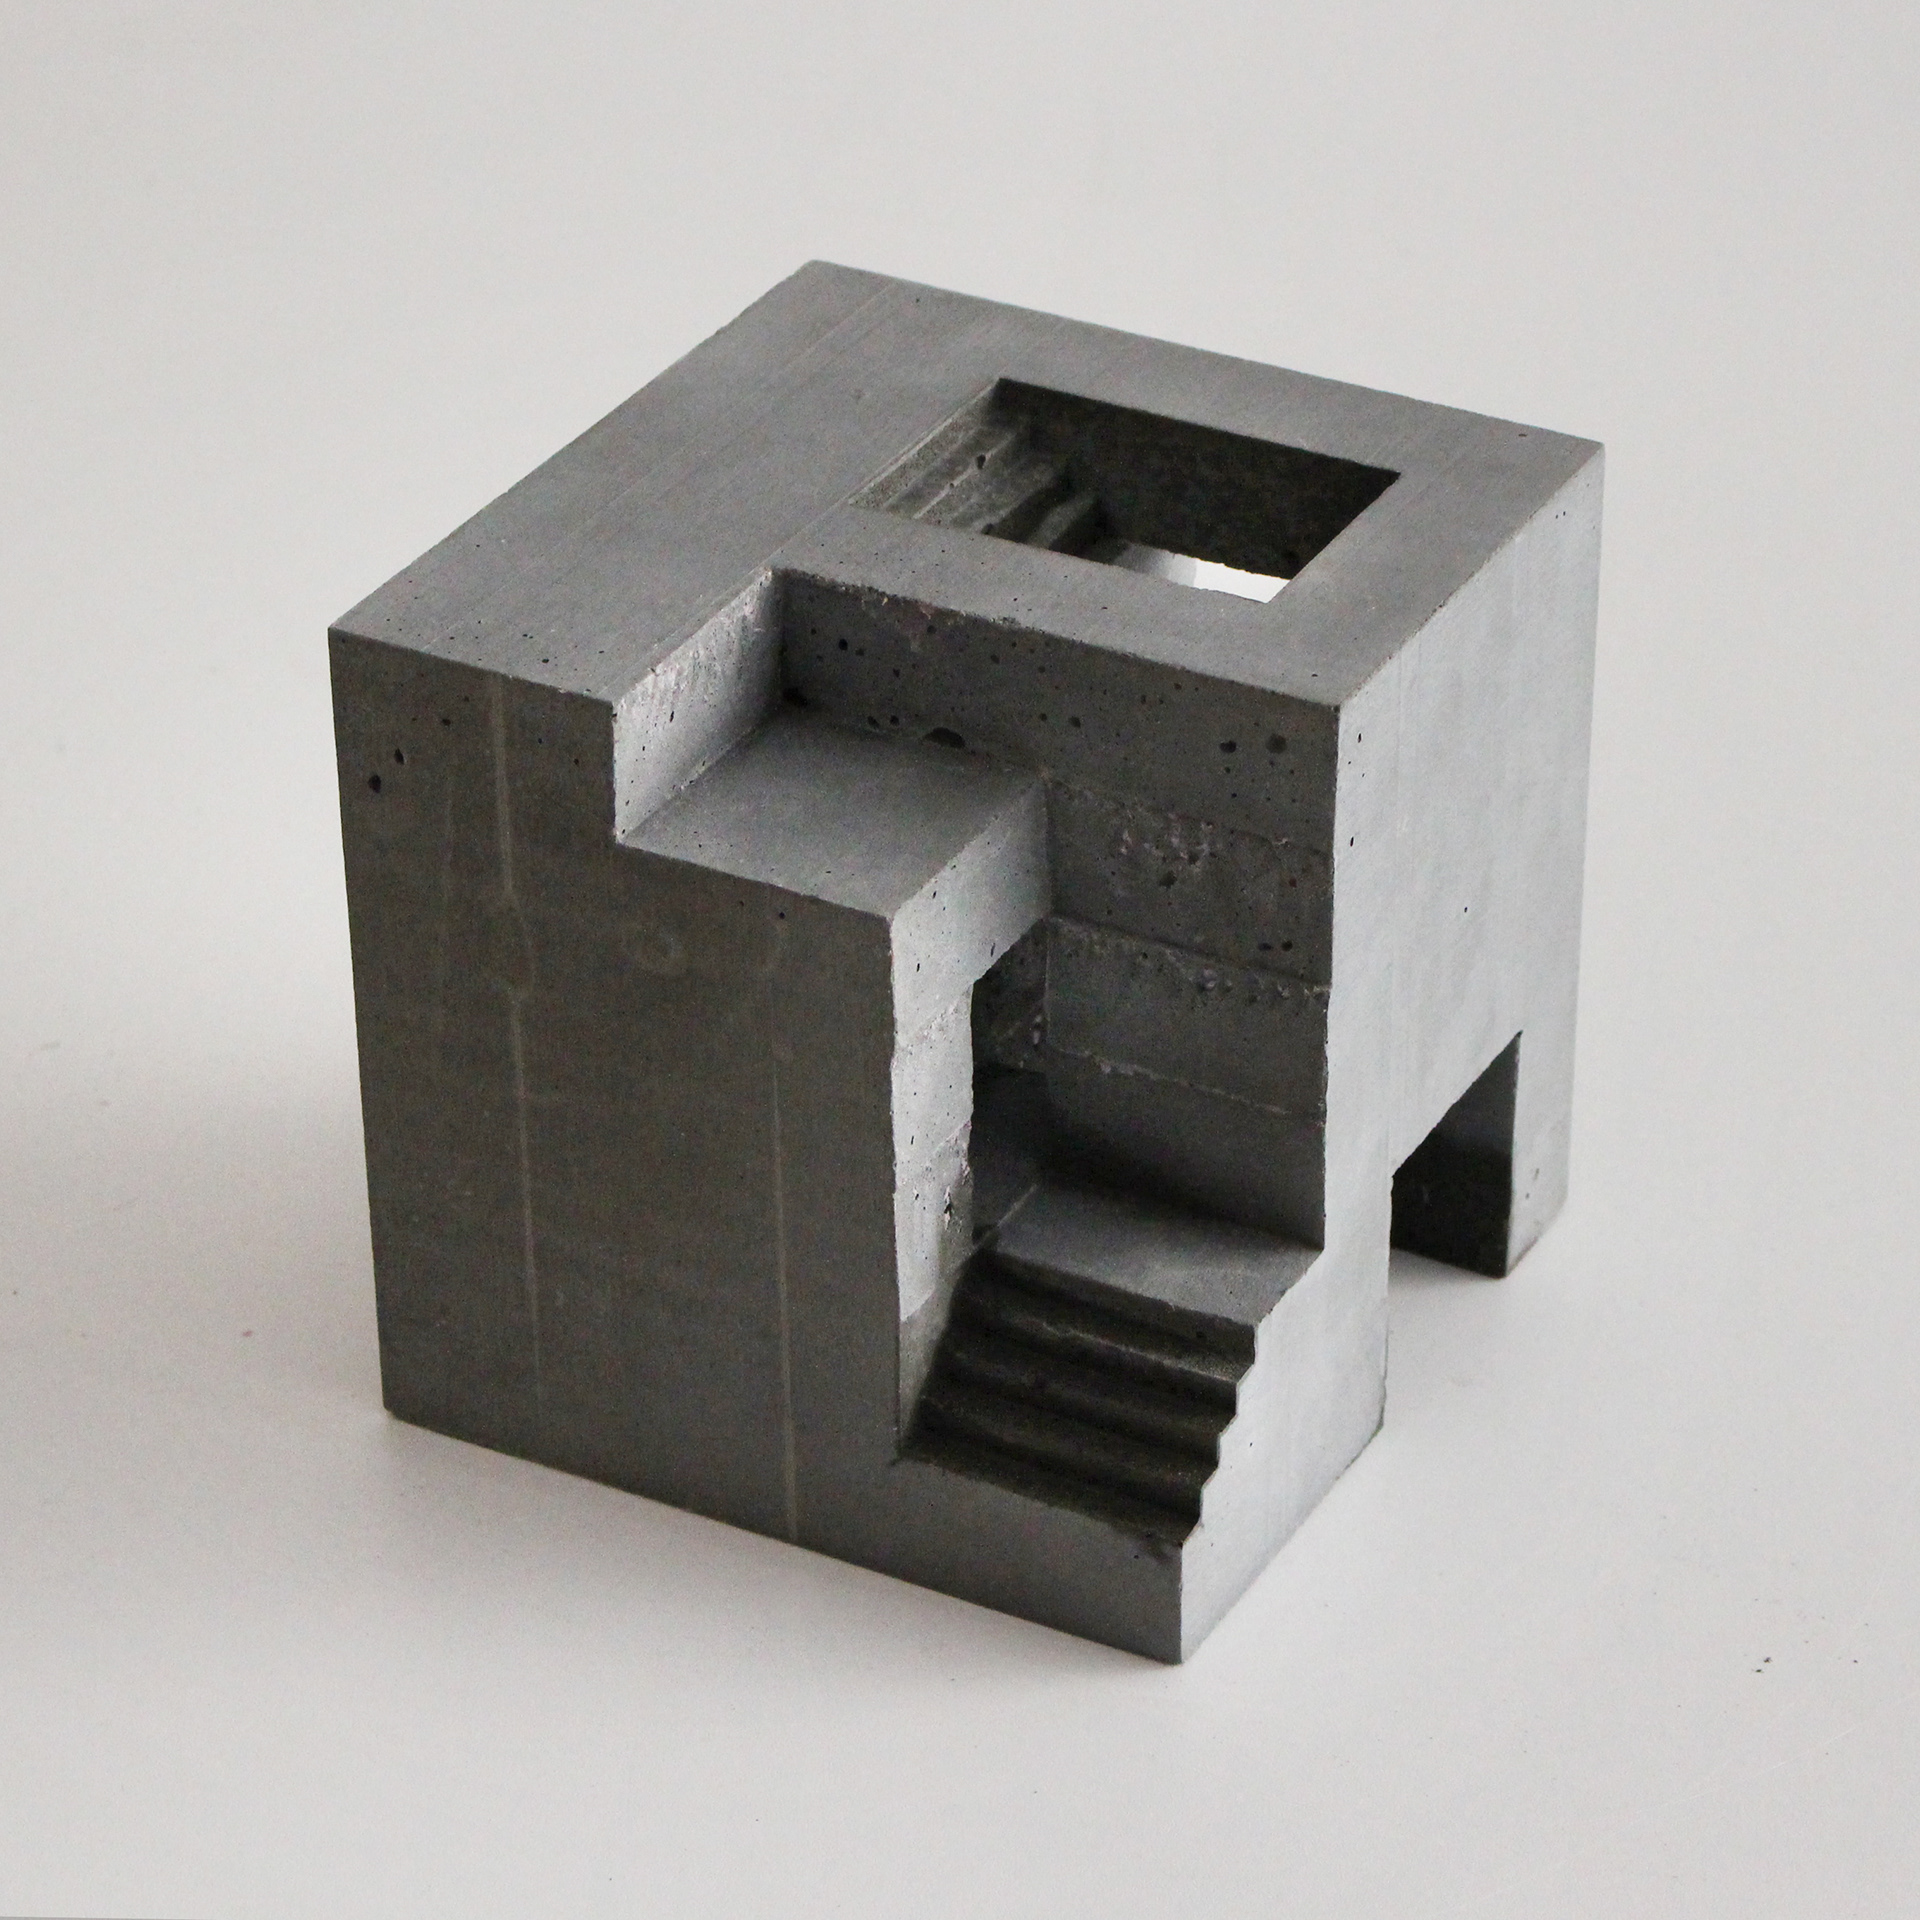 David Umemoto's concrete sculptures